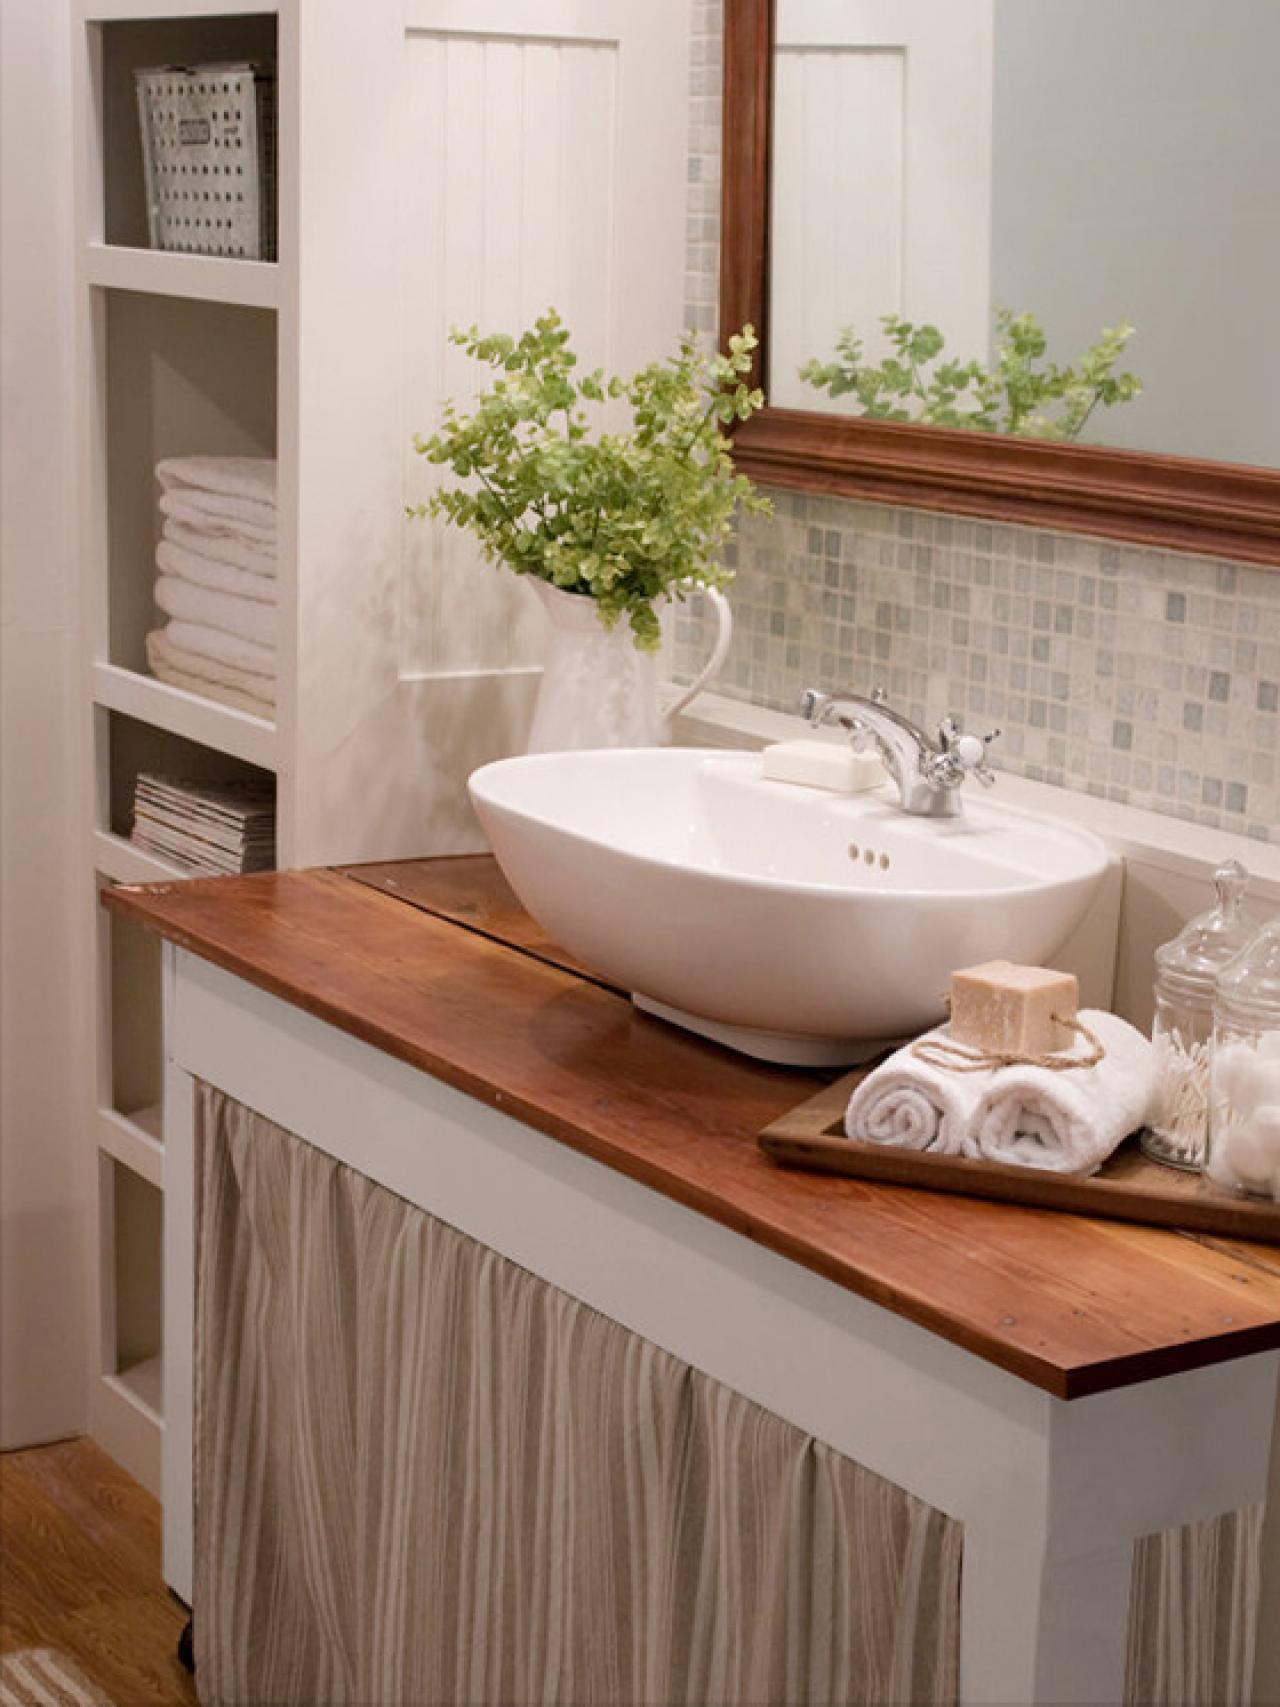 Bathroom Decor And Ideas small bathroom decorating ideas | hgtv